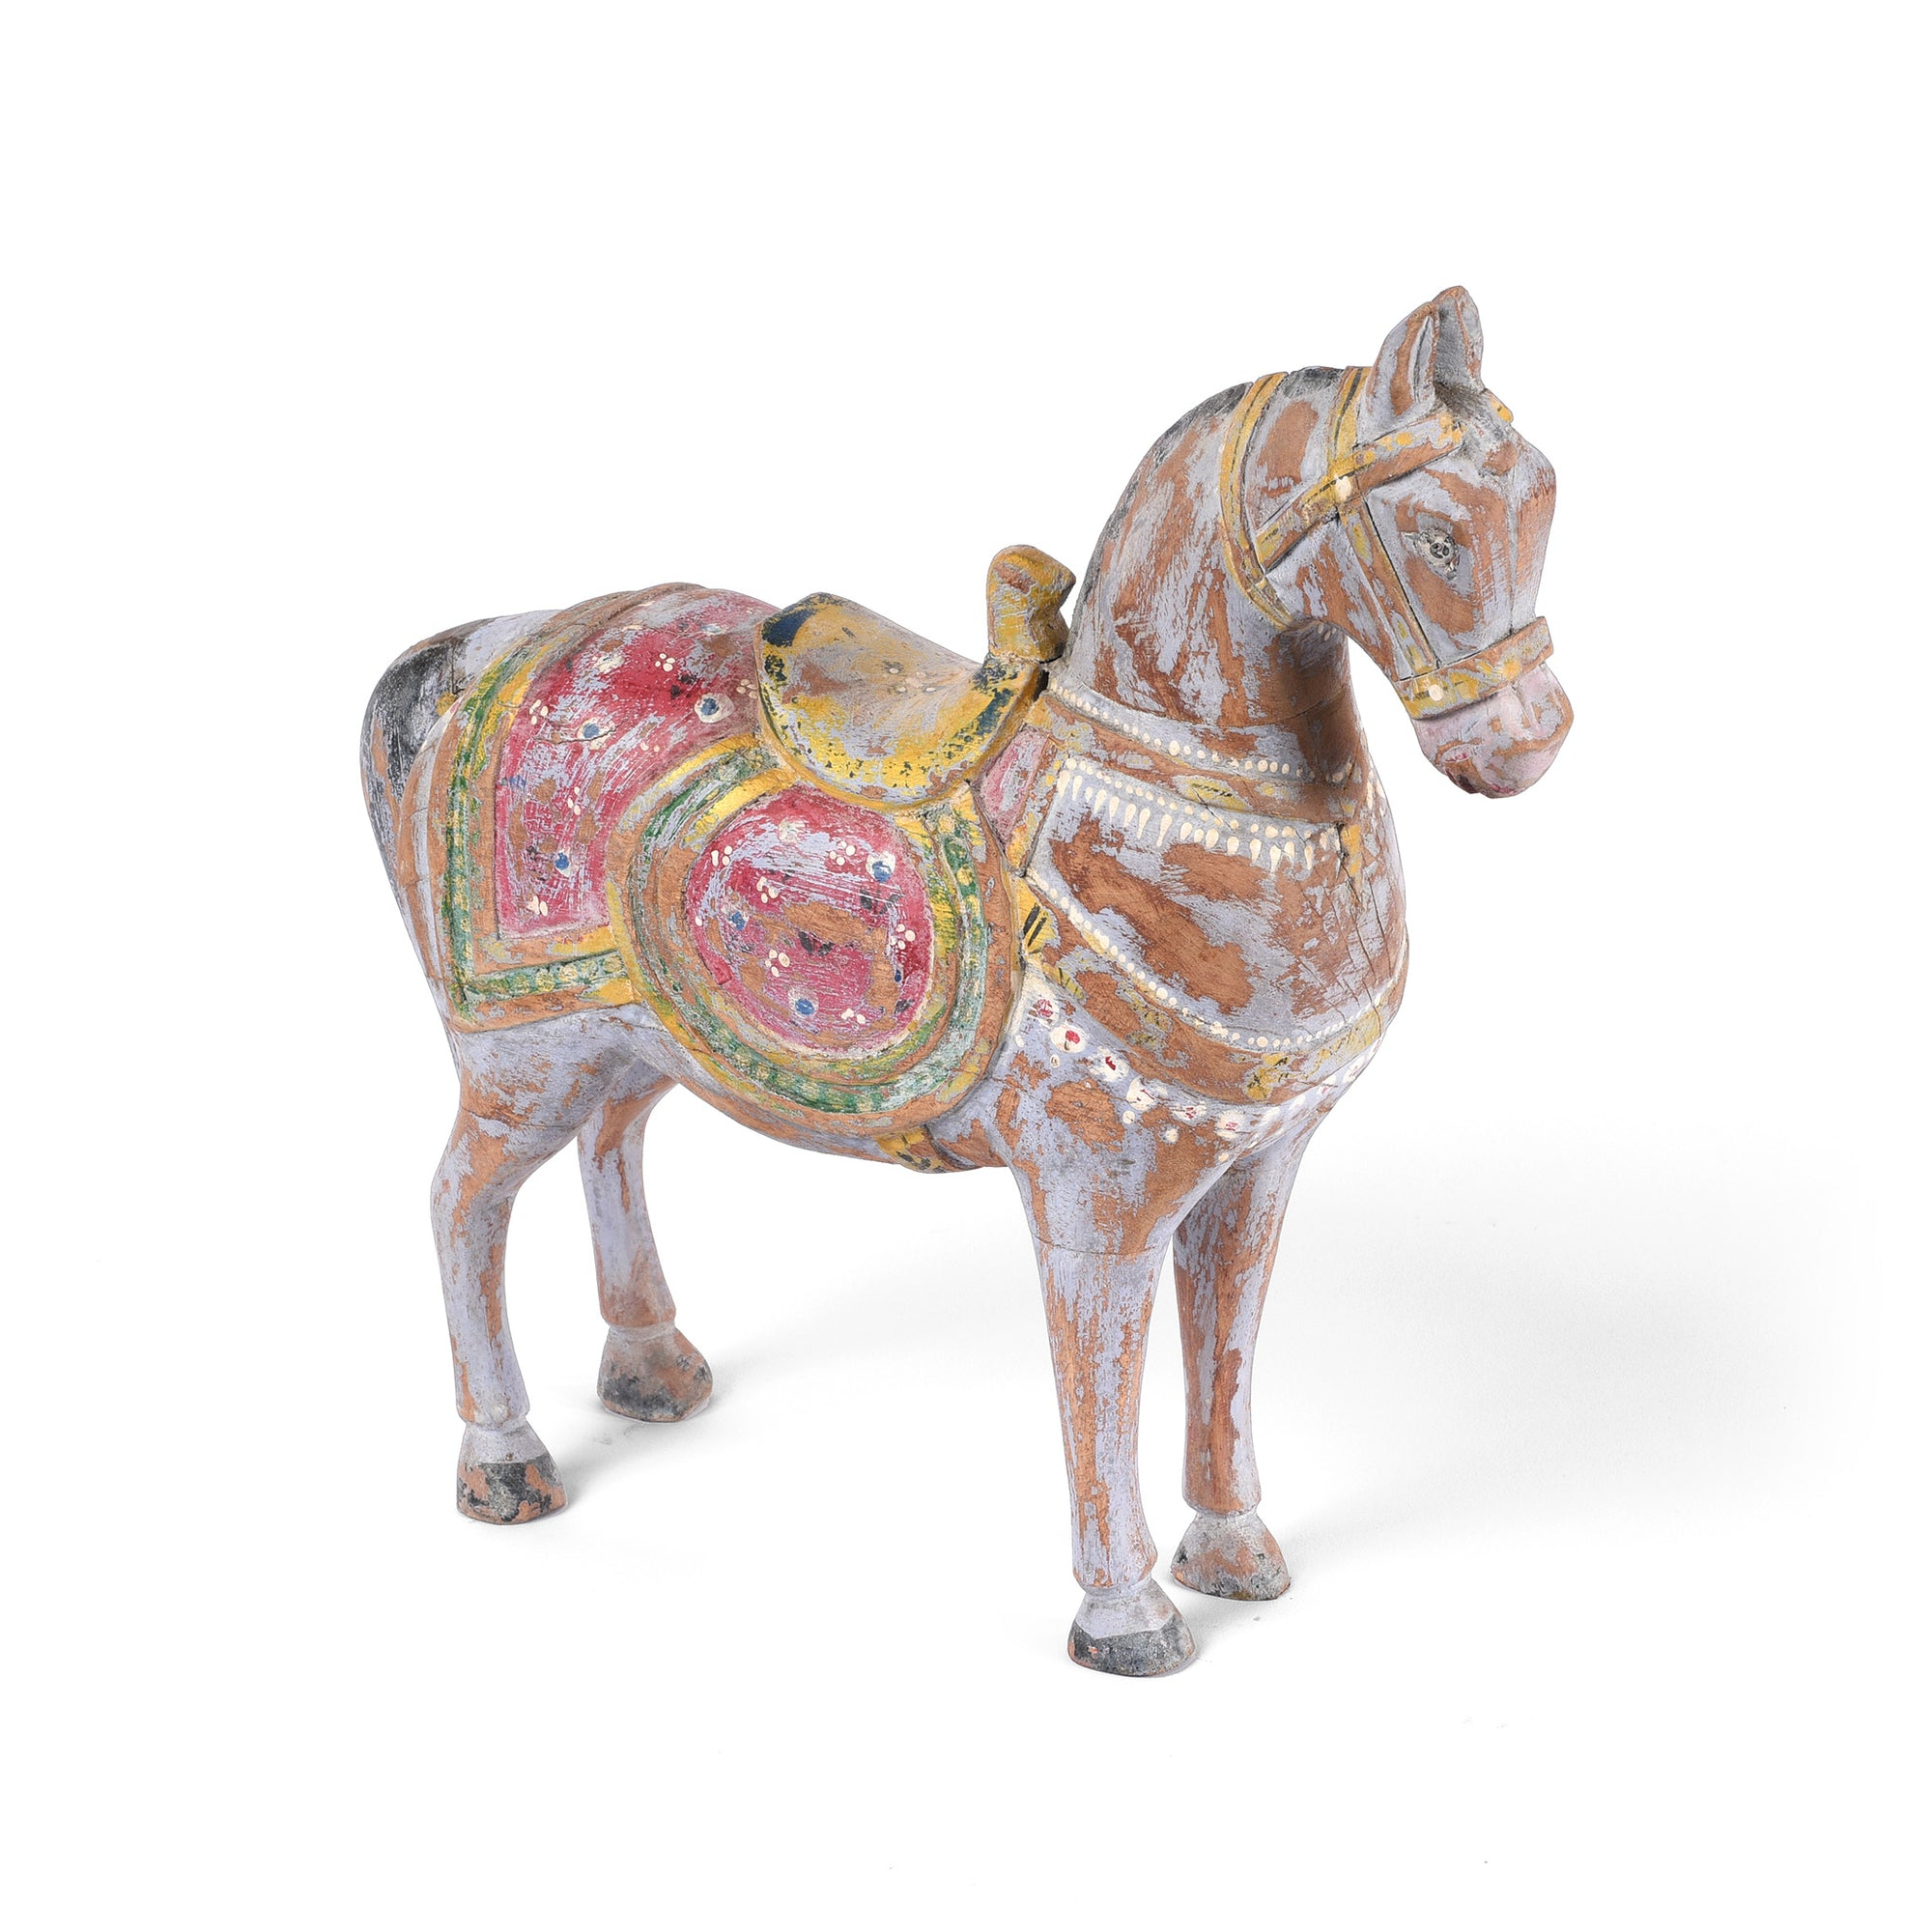 These pastel painted horse figurines are painstakingly carved by talented Rajasthani artists in India